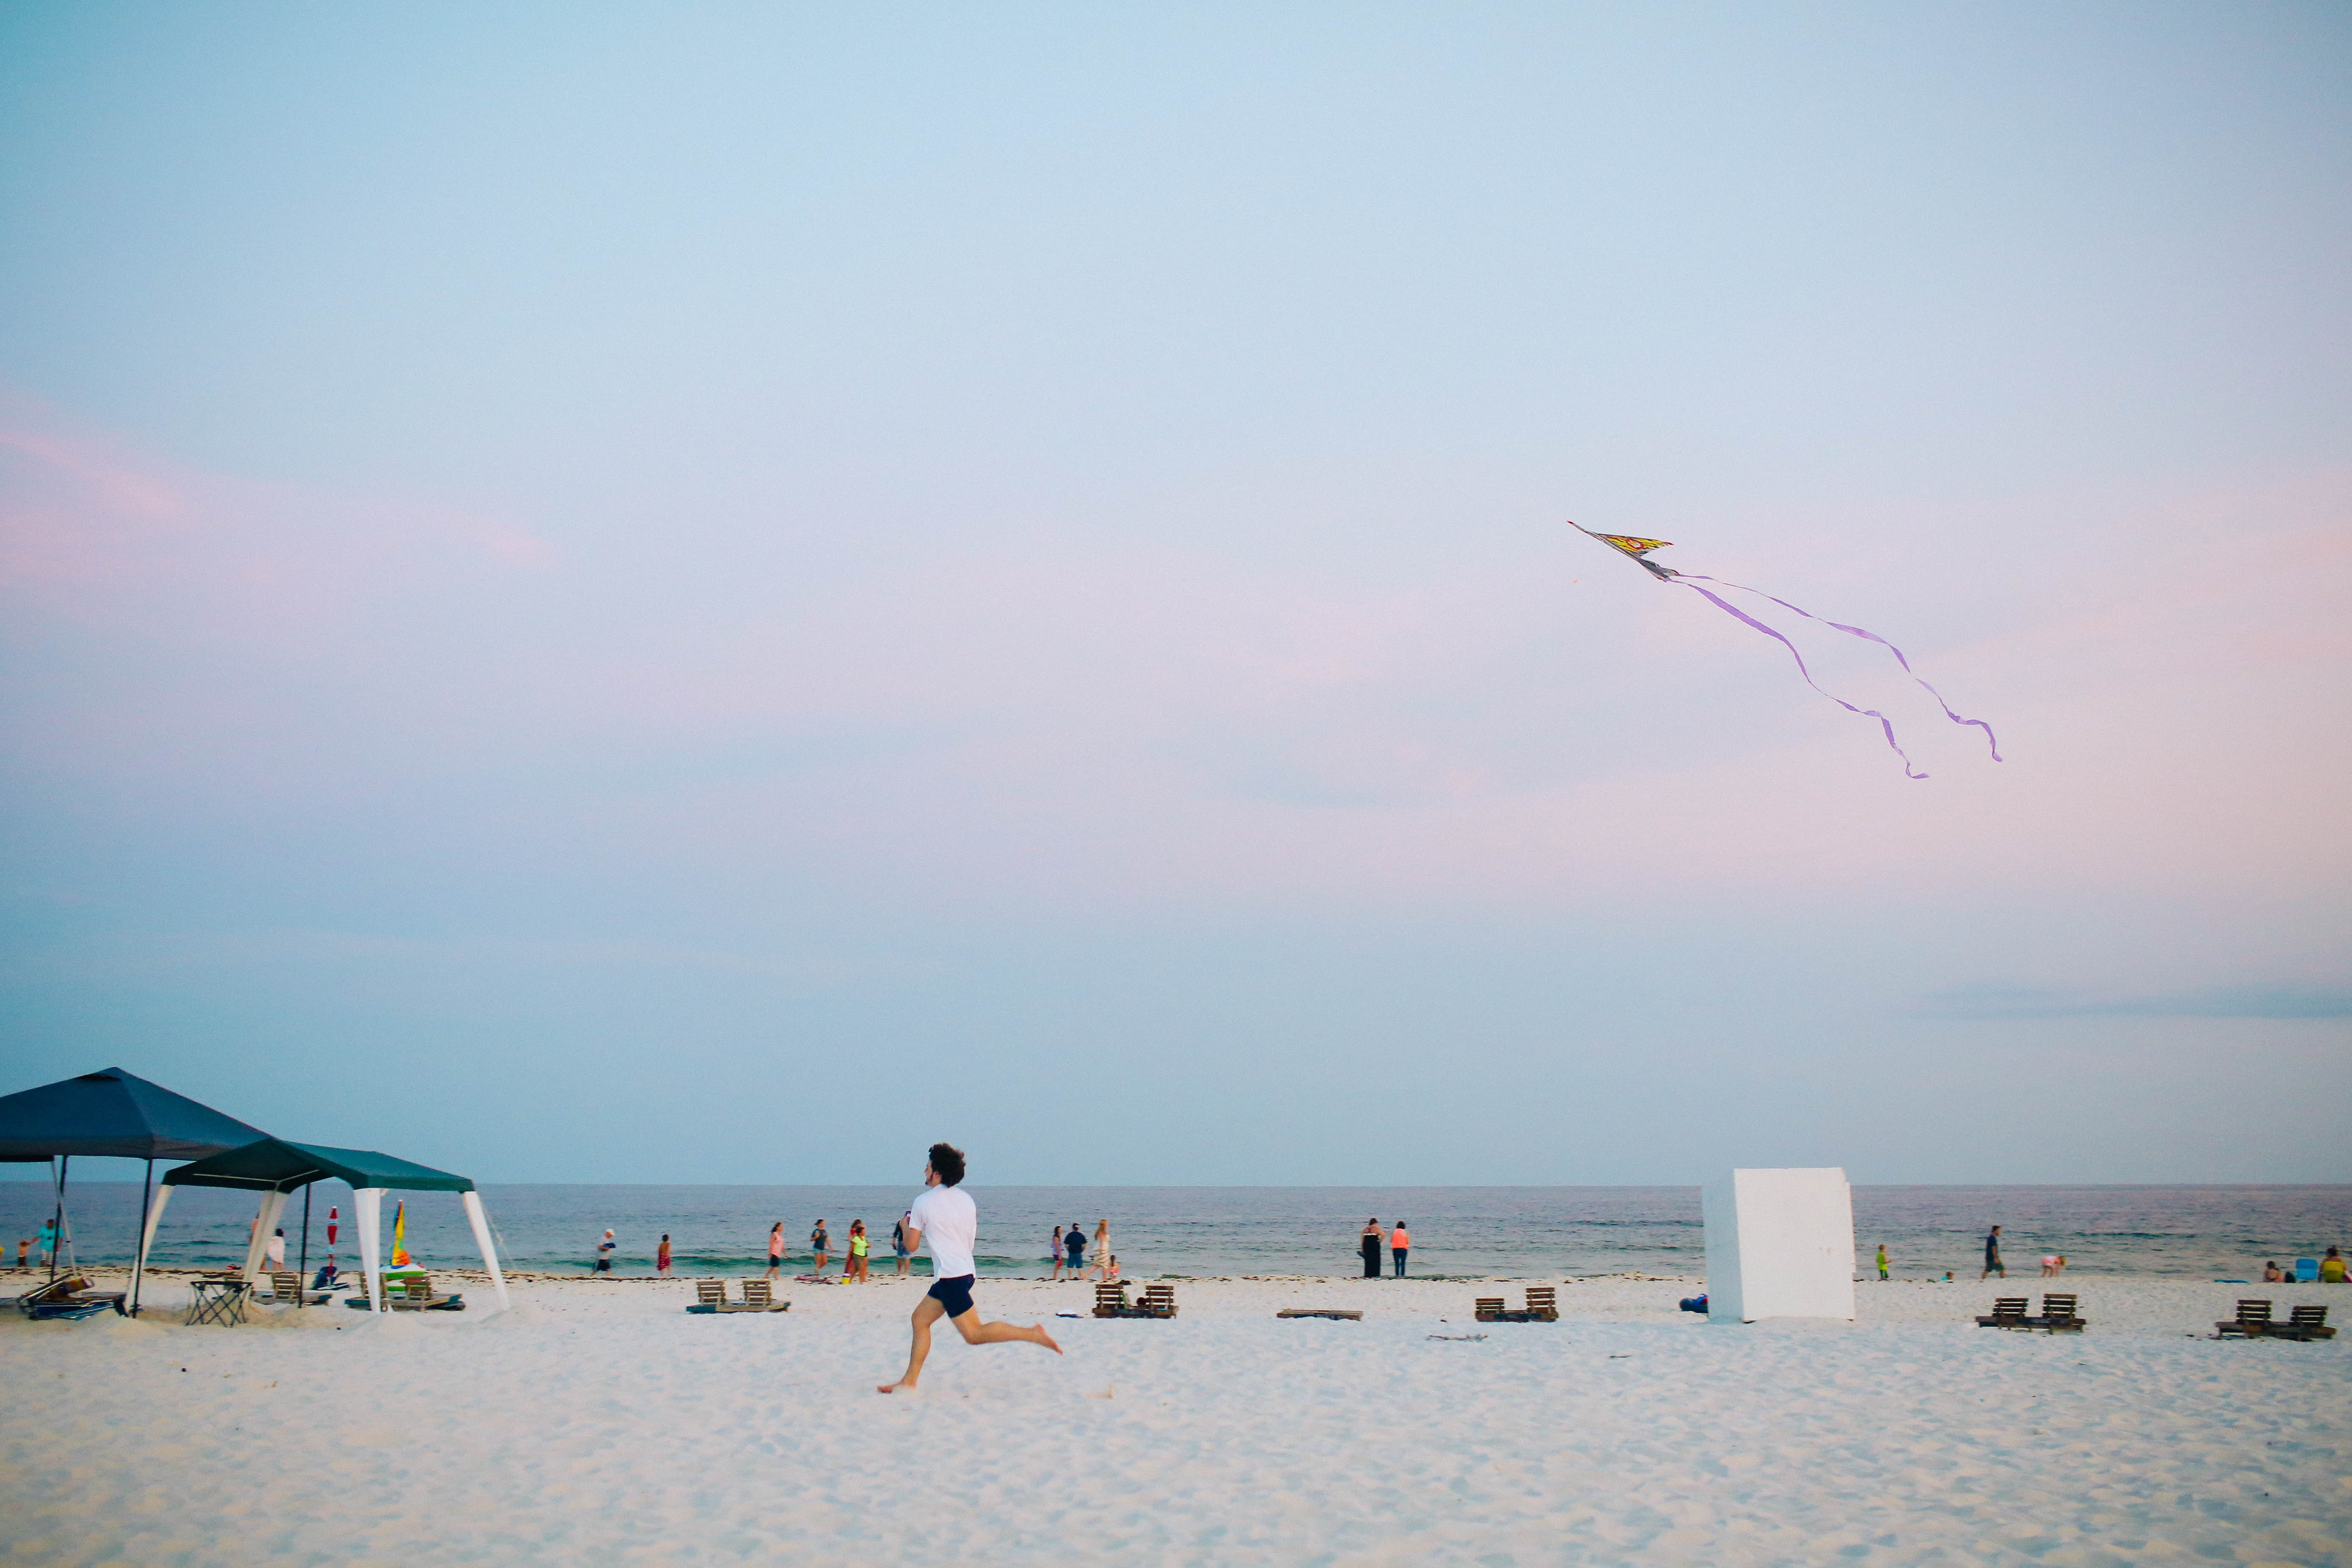 Happy summer seaside activity and flying kite at the beach